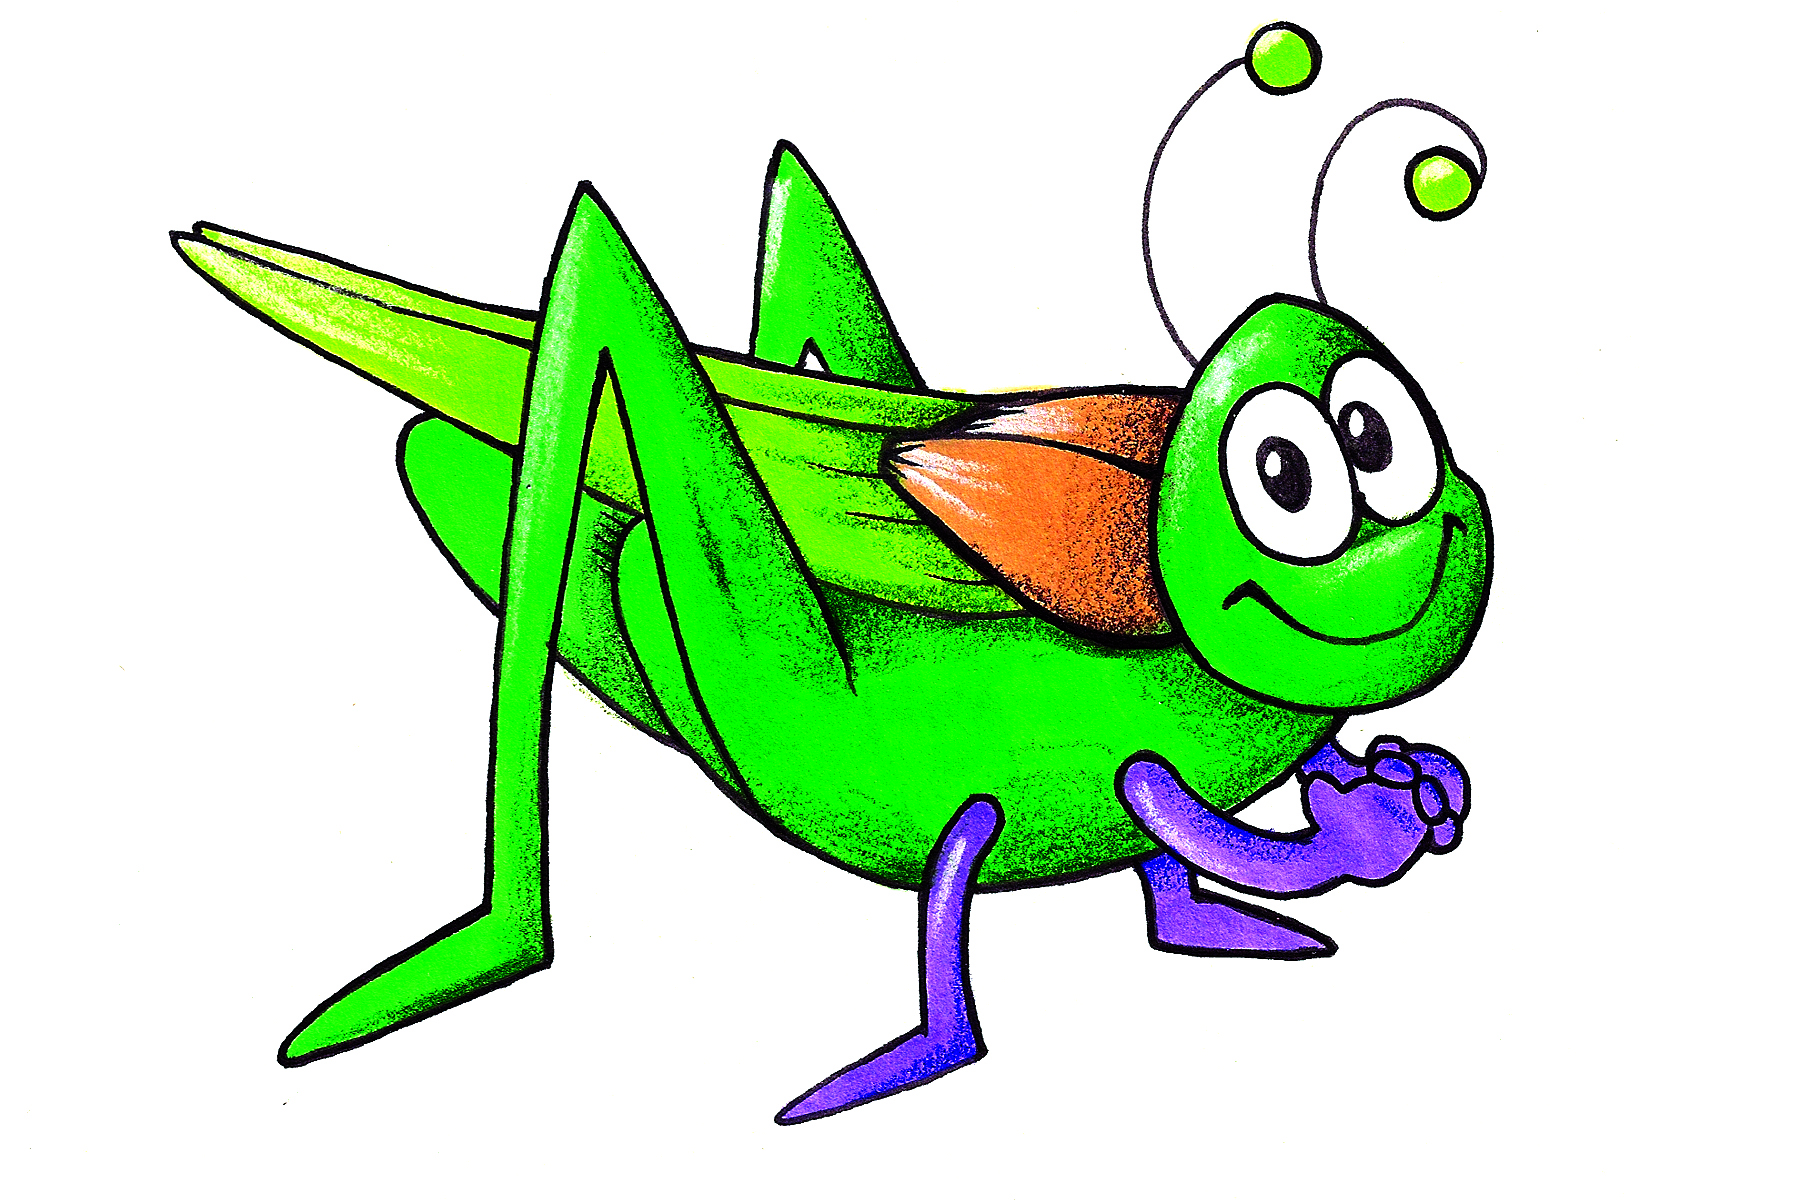 Circle of stars cricket. Insects clipart green insect